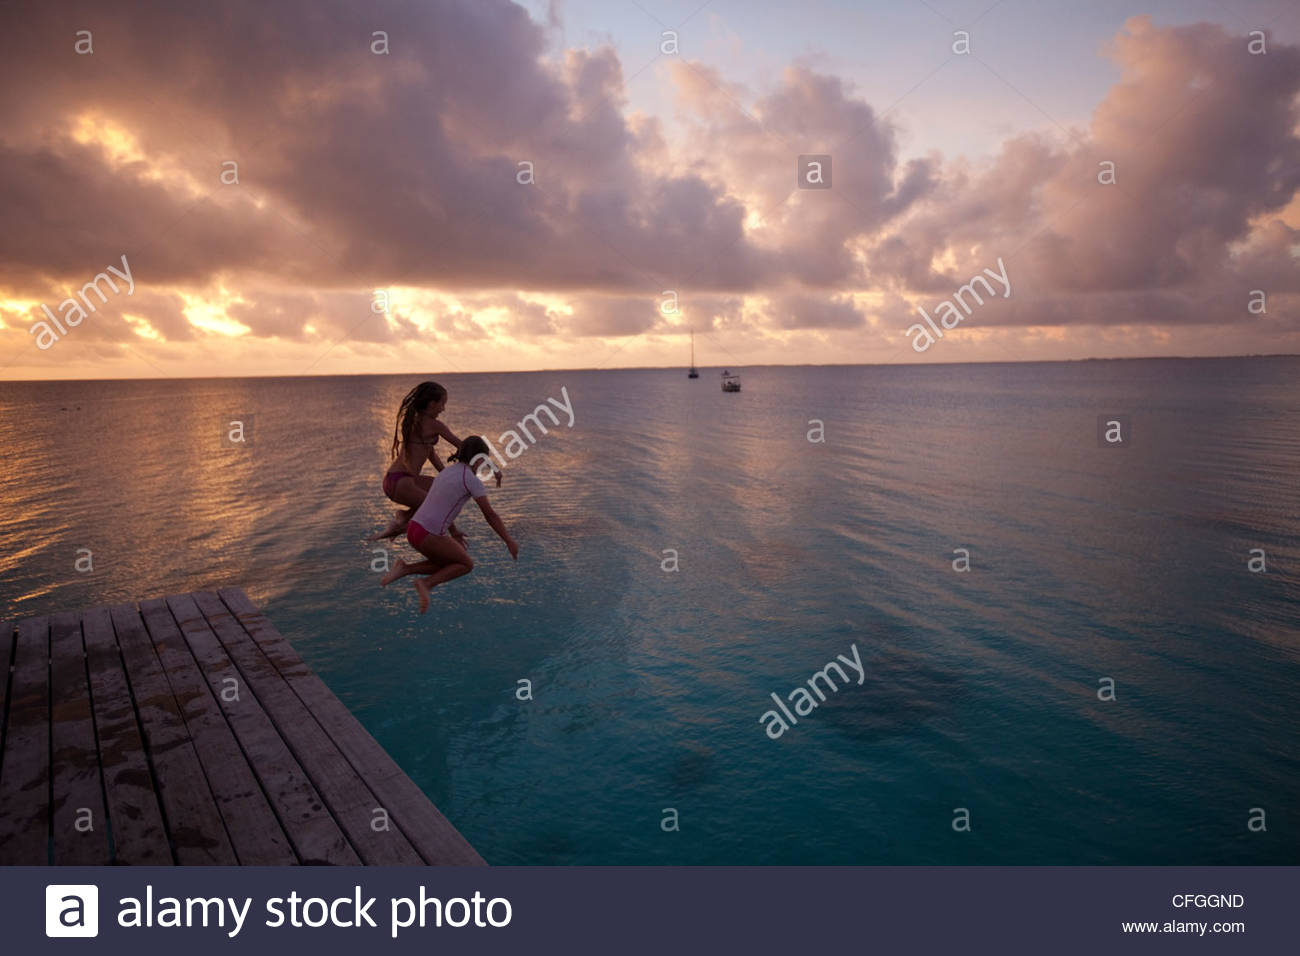 Girls jumping off a pier at the 'Le Maitai Dream' hotel. - Stock